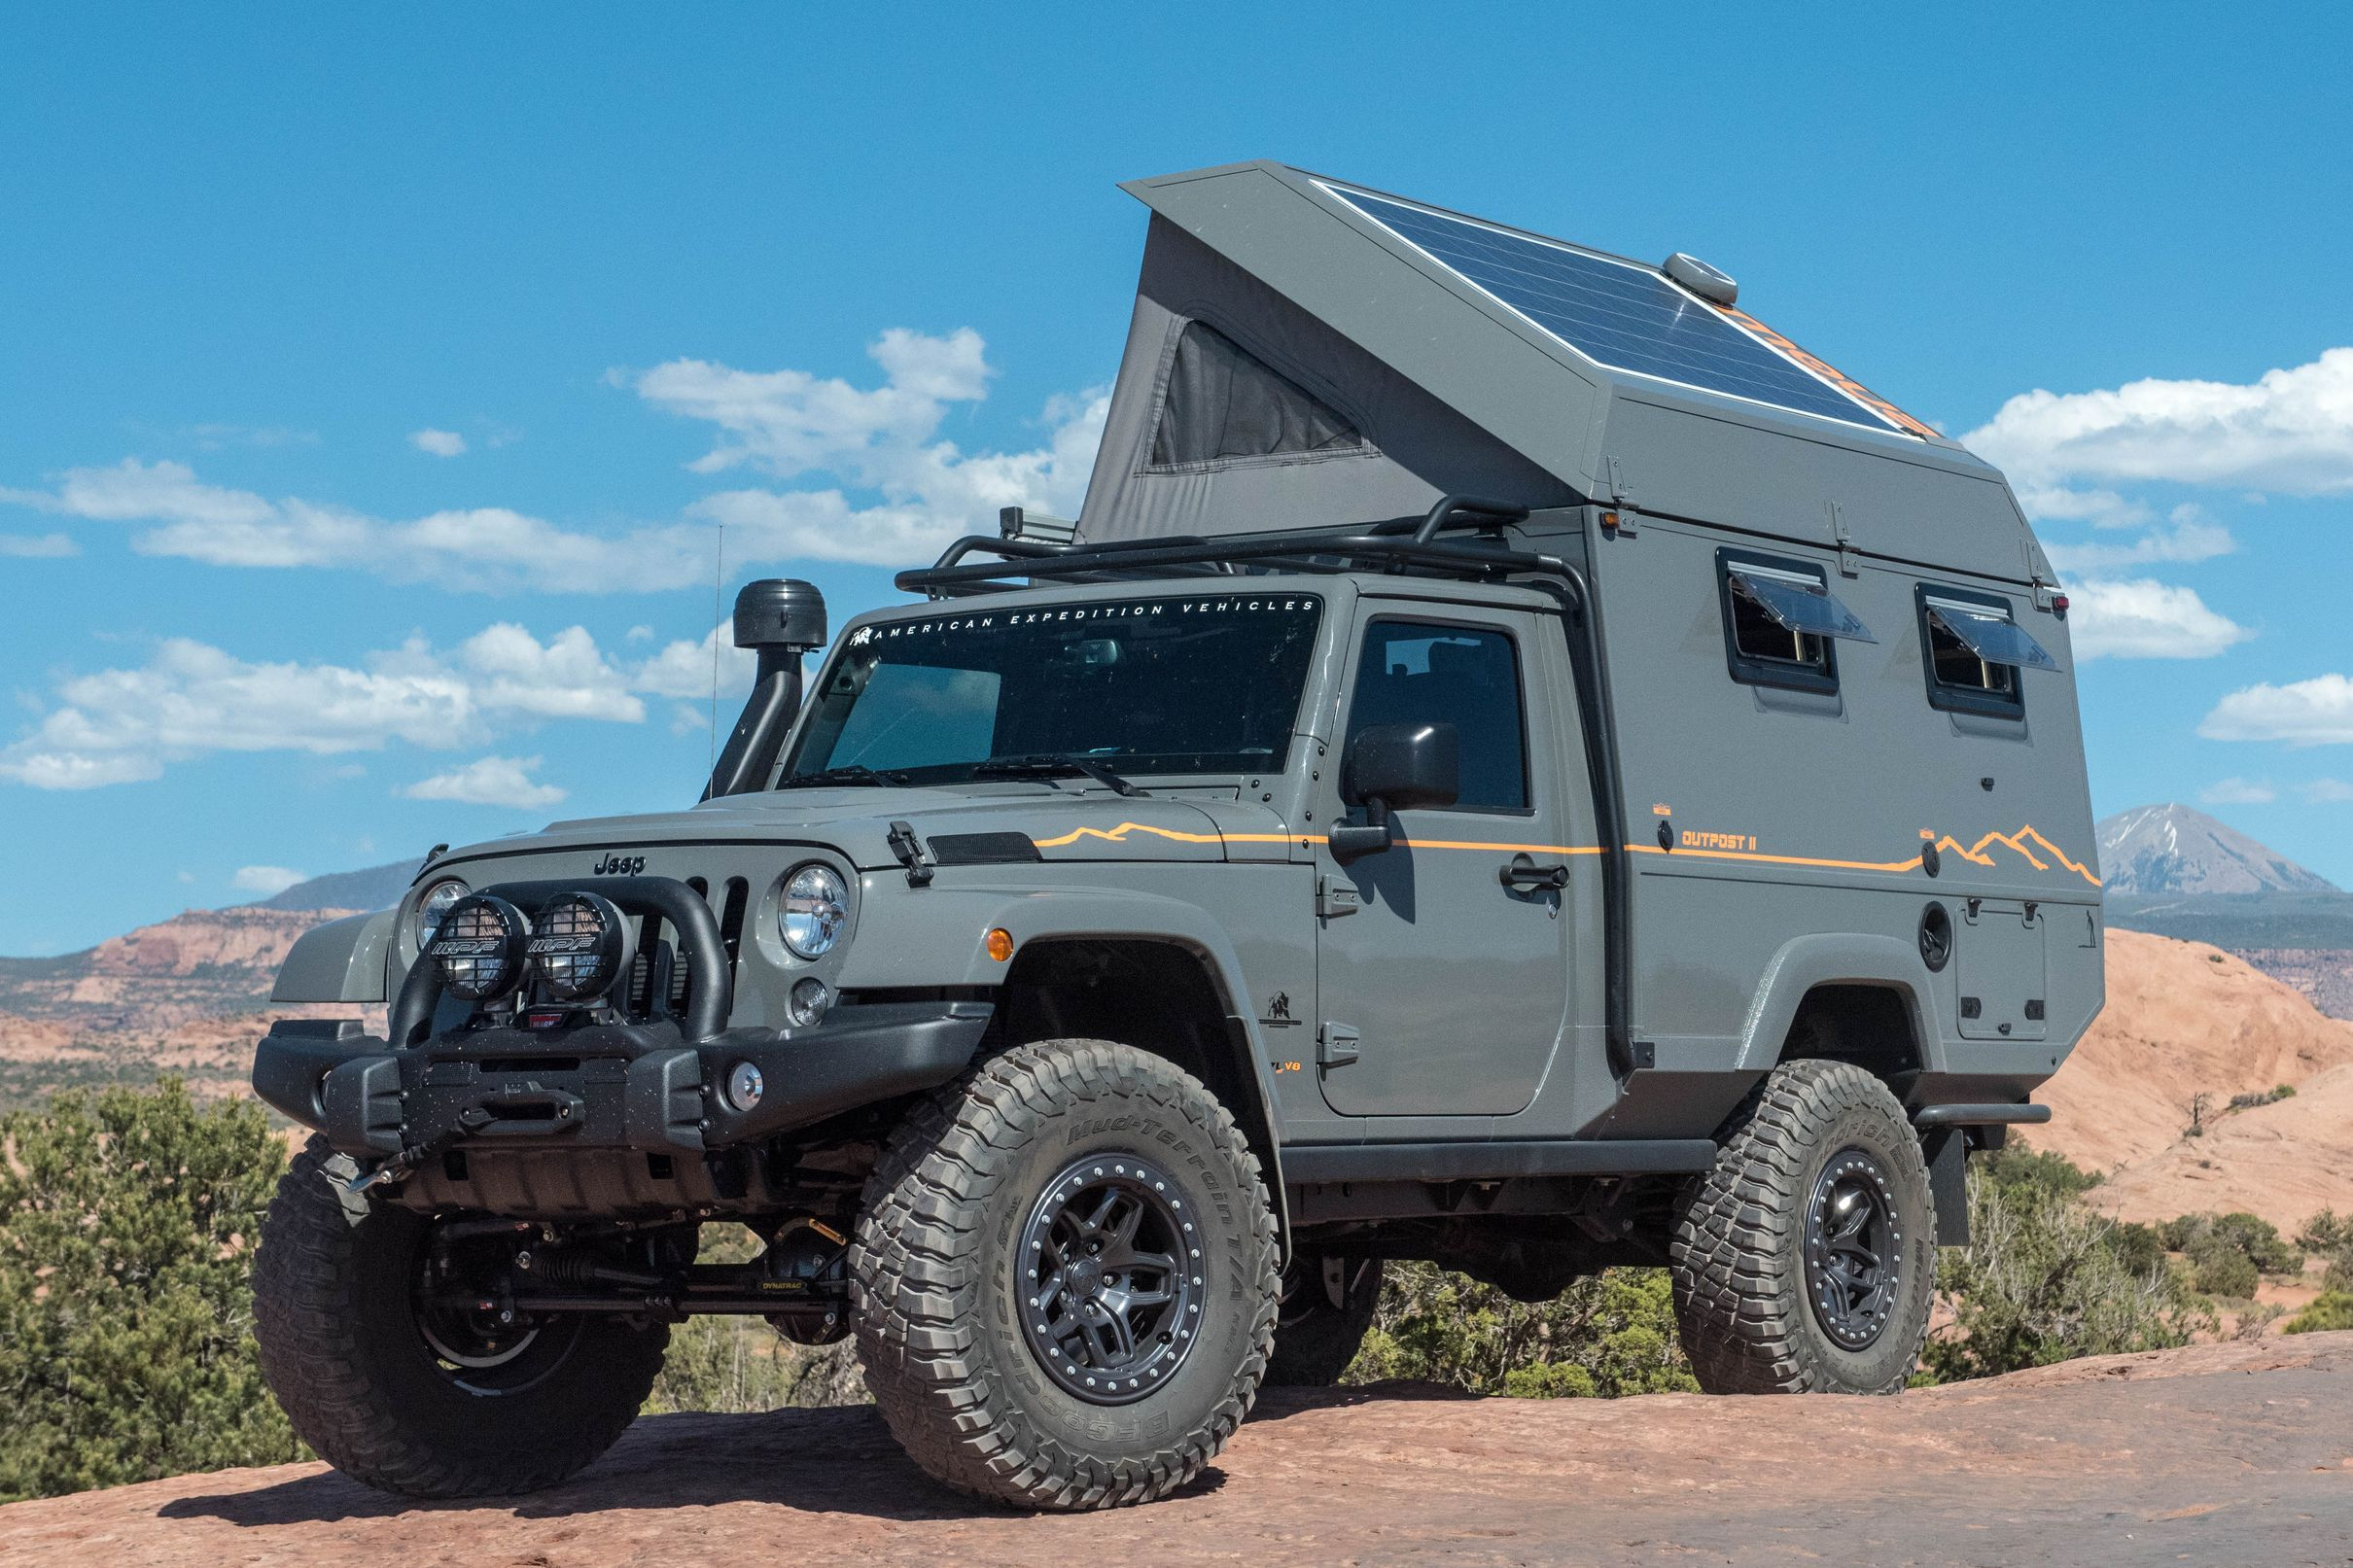 Burly truck camper is expedition ready Overland vehicles